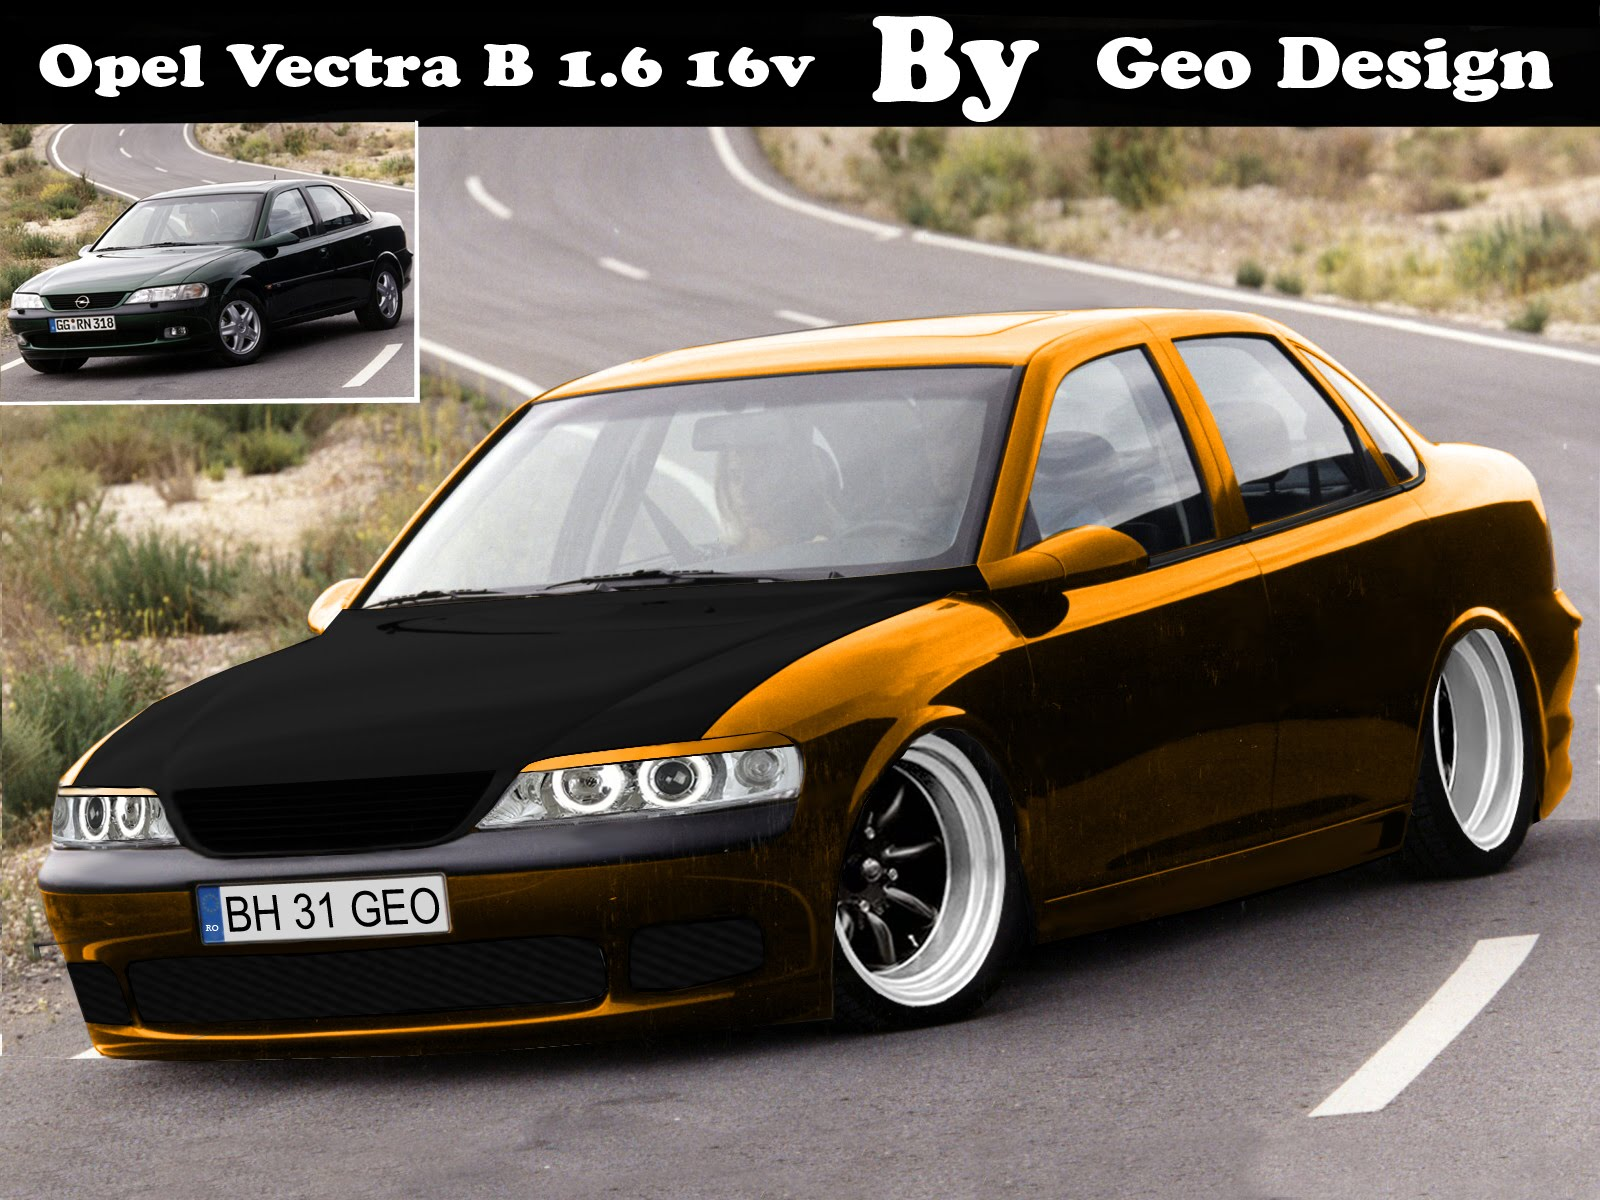 geo designs opel vectra b by geo. Black Bedroom Furniture Sets. Home Design Ideas